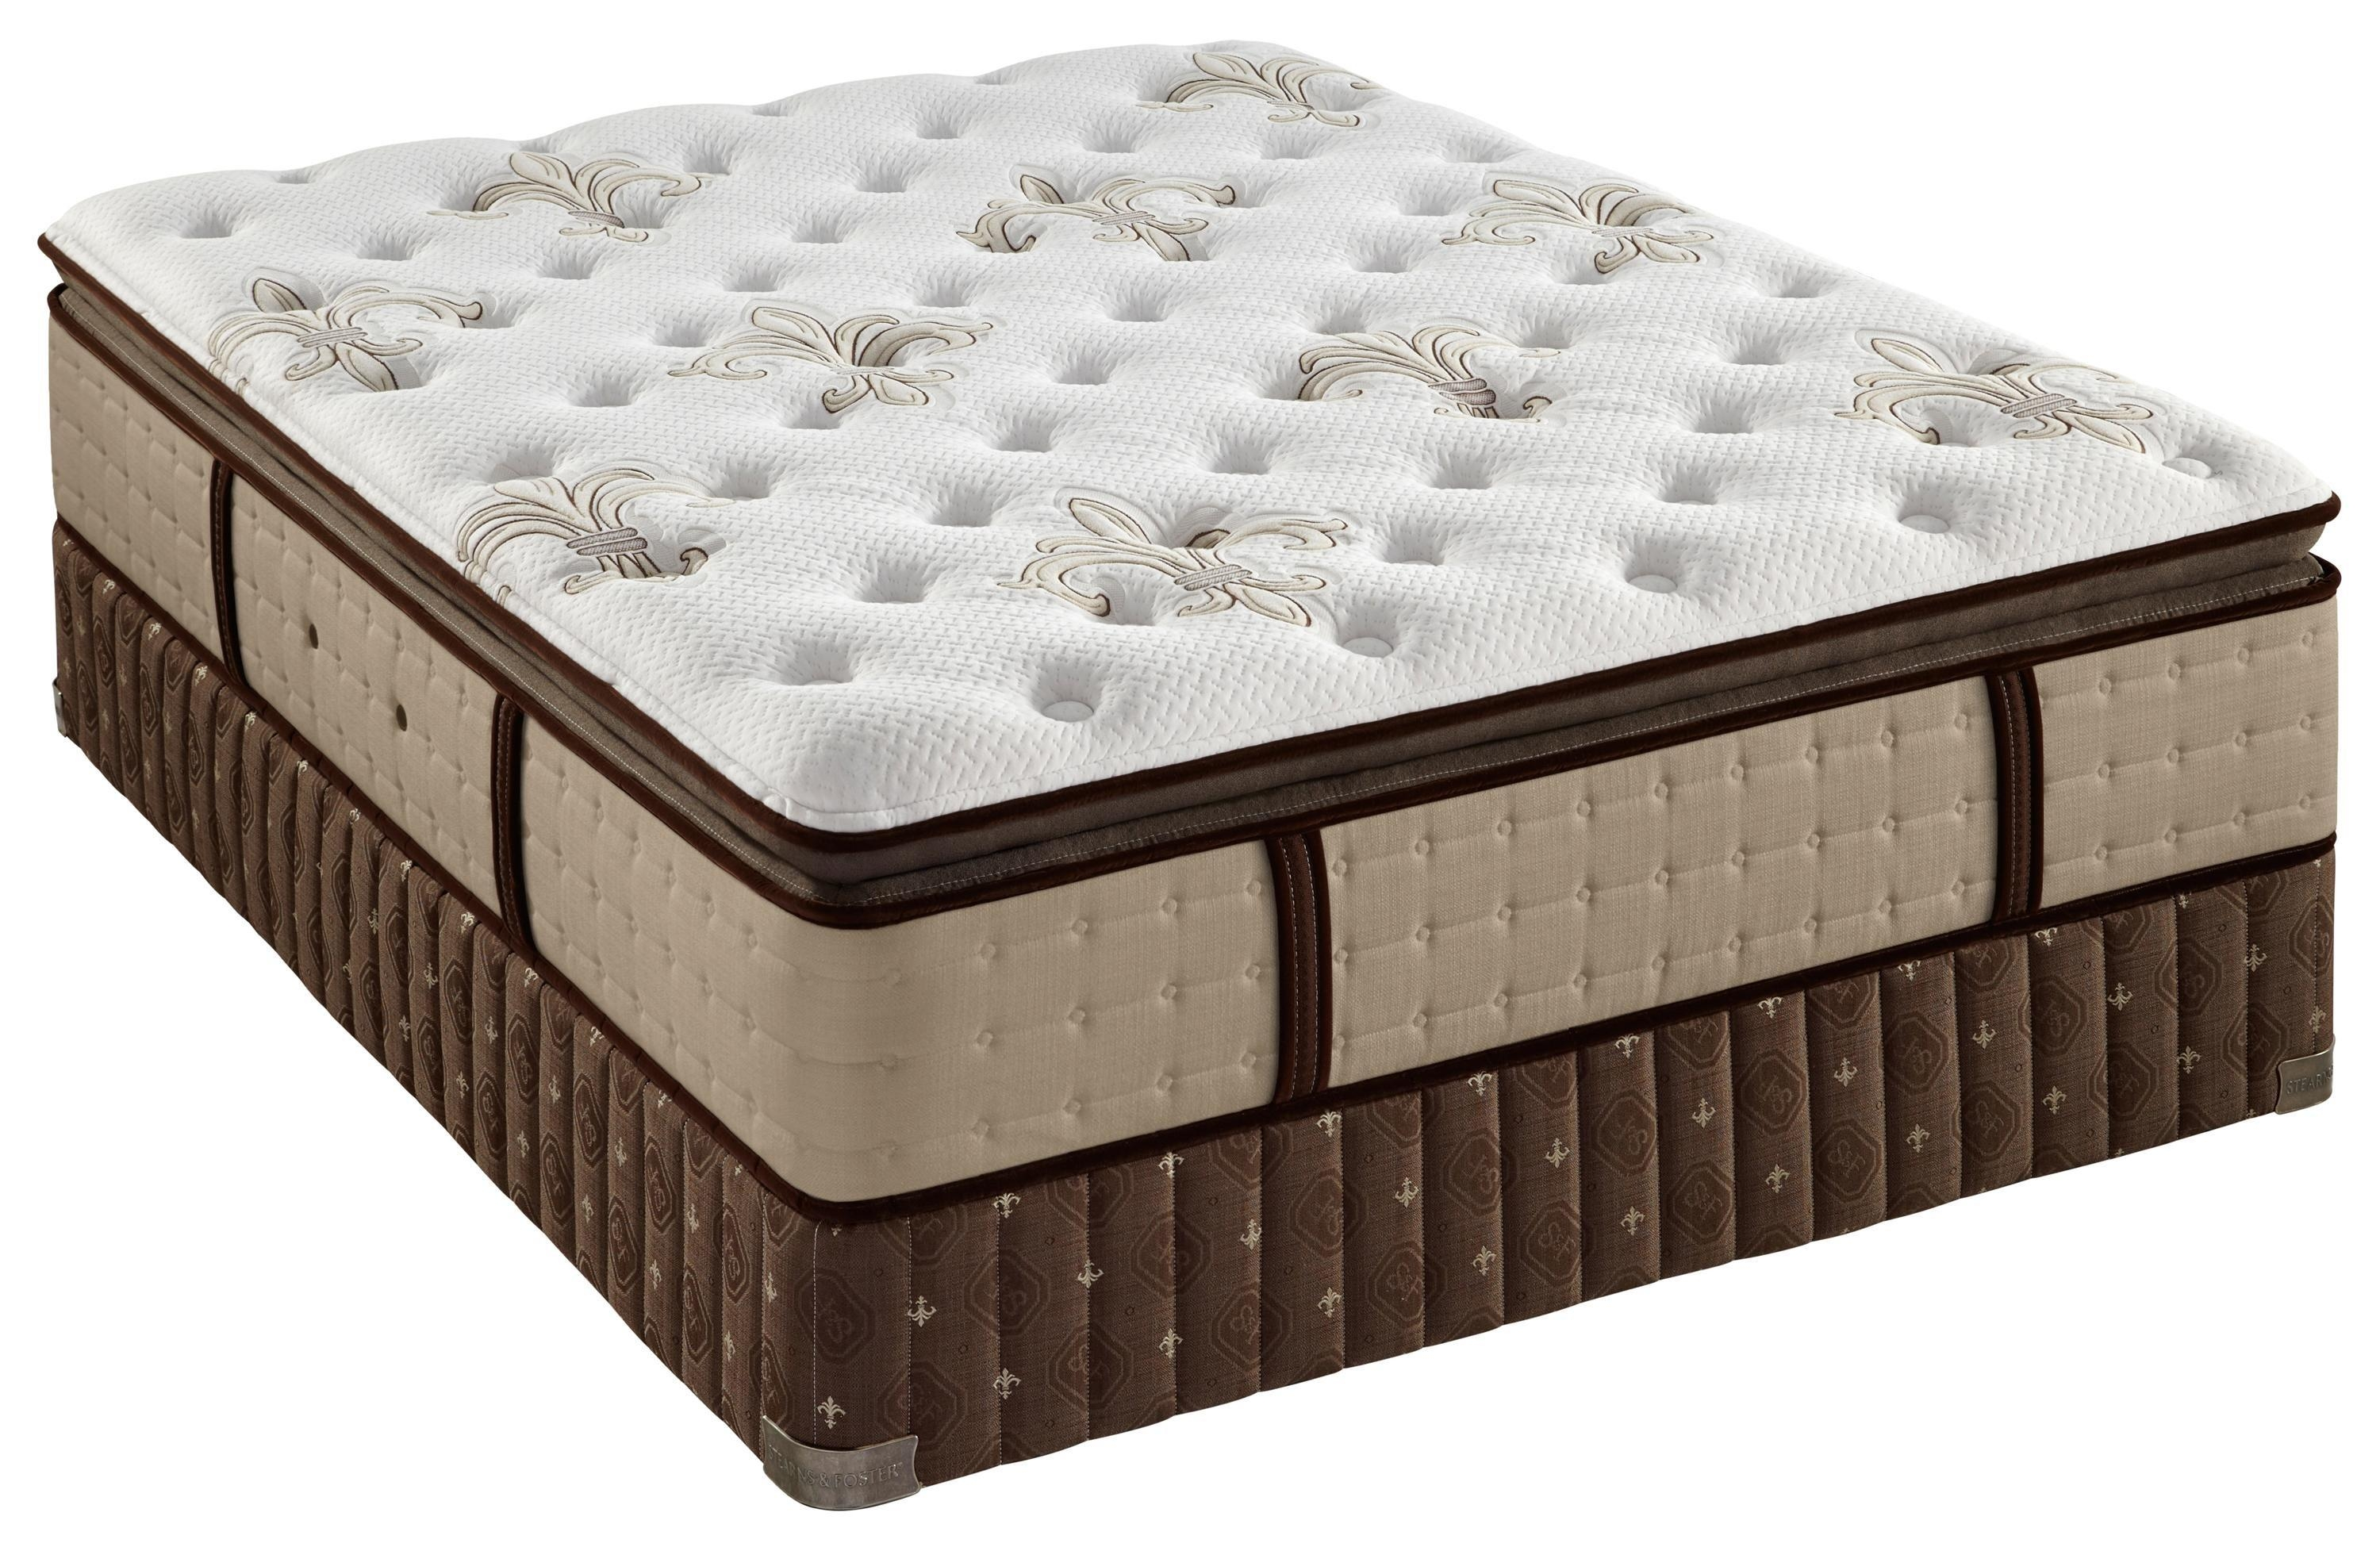 Pillowtop Queen Mattress Set | Vertigino Mattress With Regard To Queen Mattress Sets (Image 14 of 20)